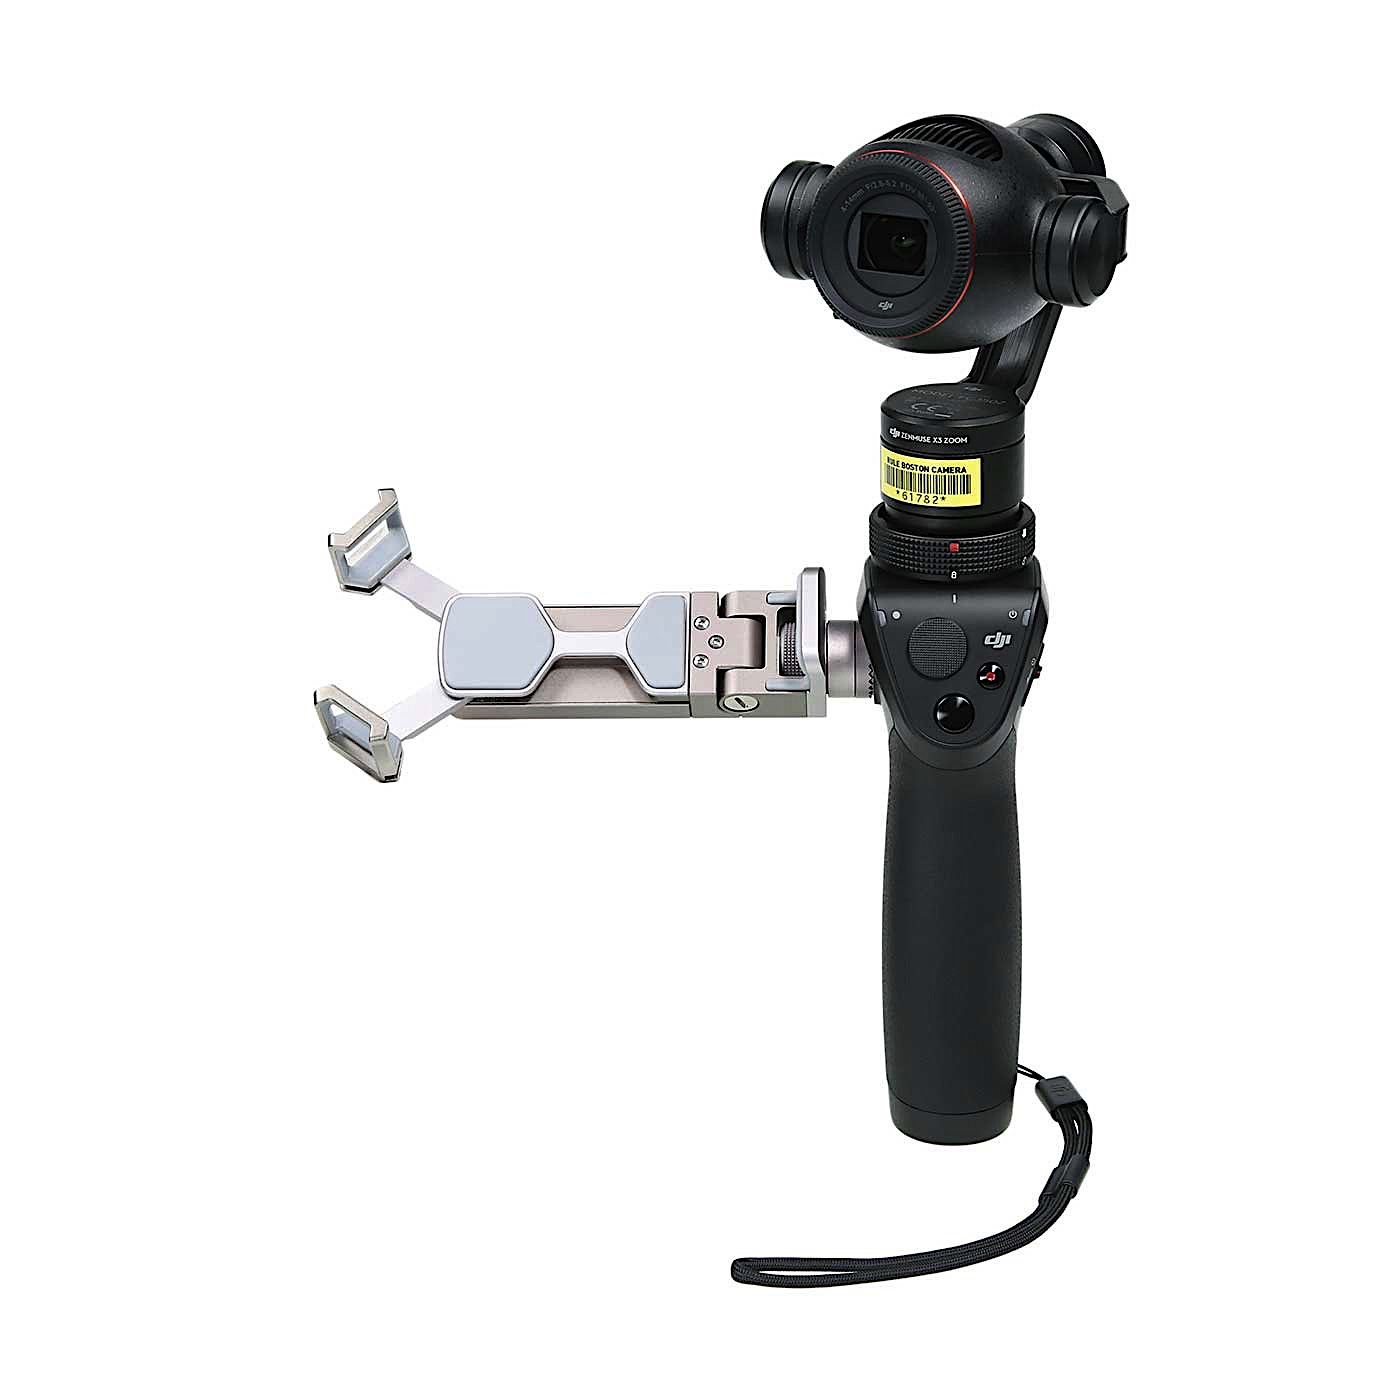 Dji Osmo Plus 4k Handheld Gimbal Camera Rule